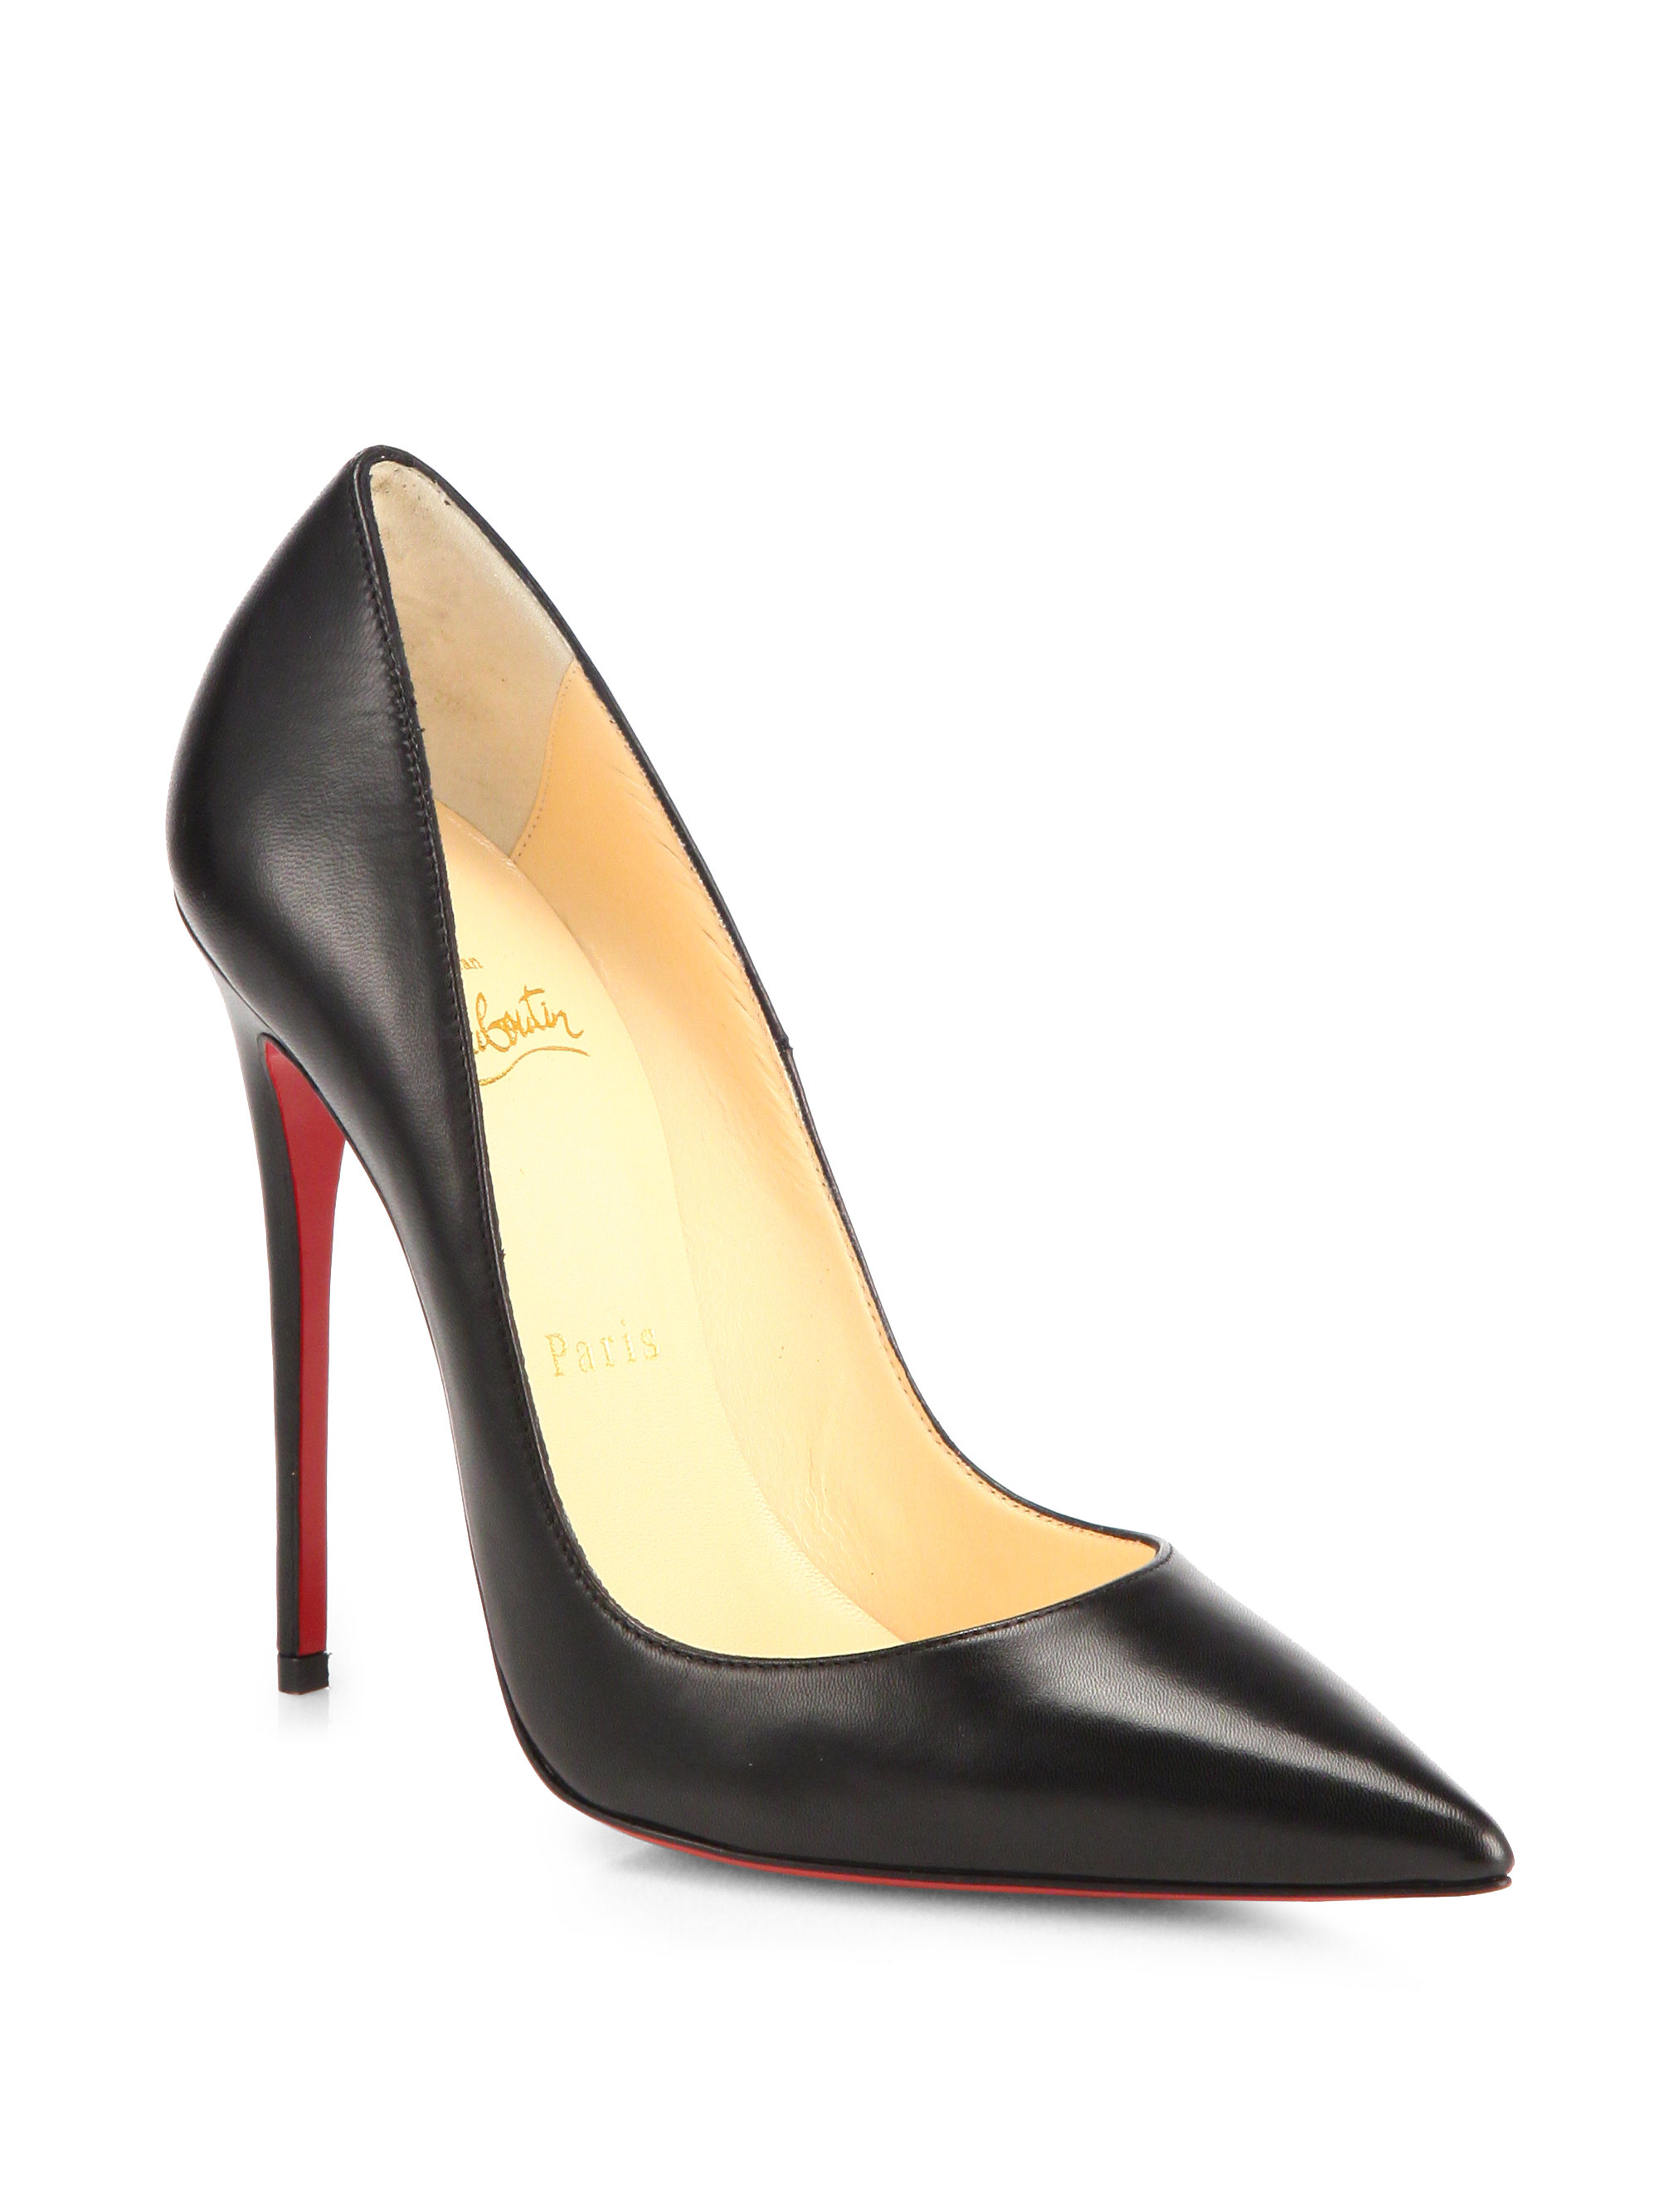 christian louboutin high heels black